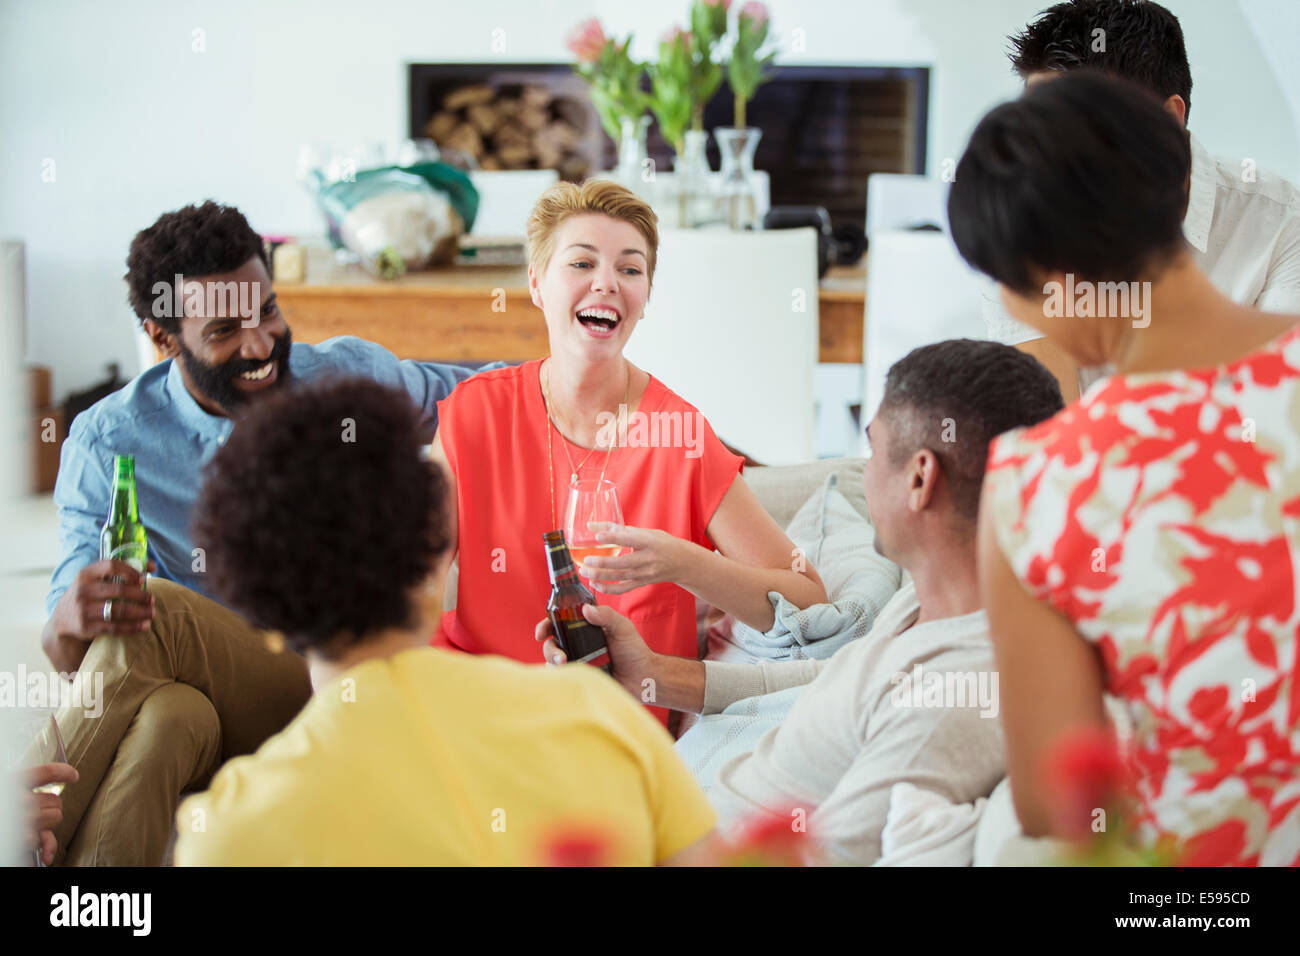 Friends relaxing at party - Stock Image